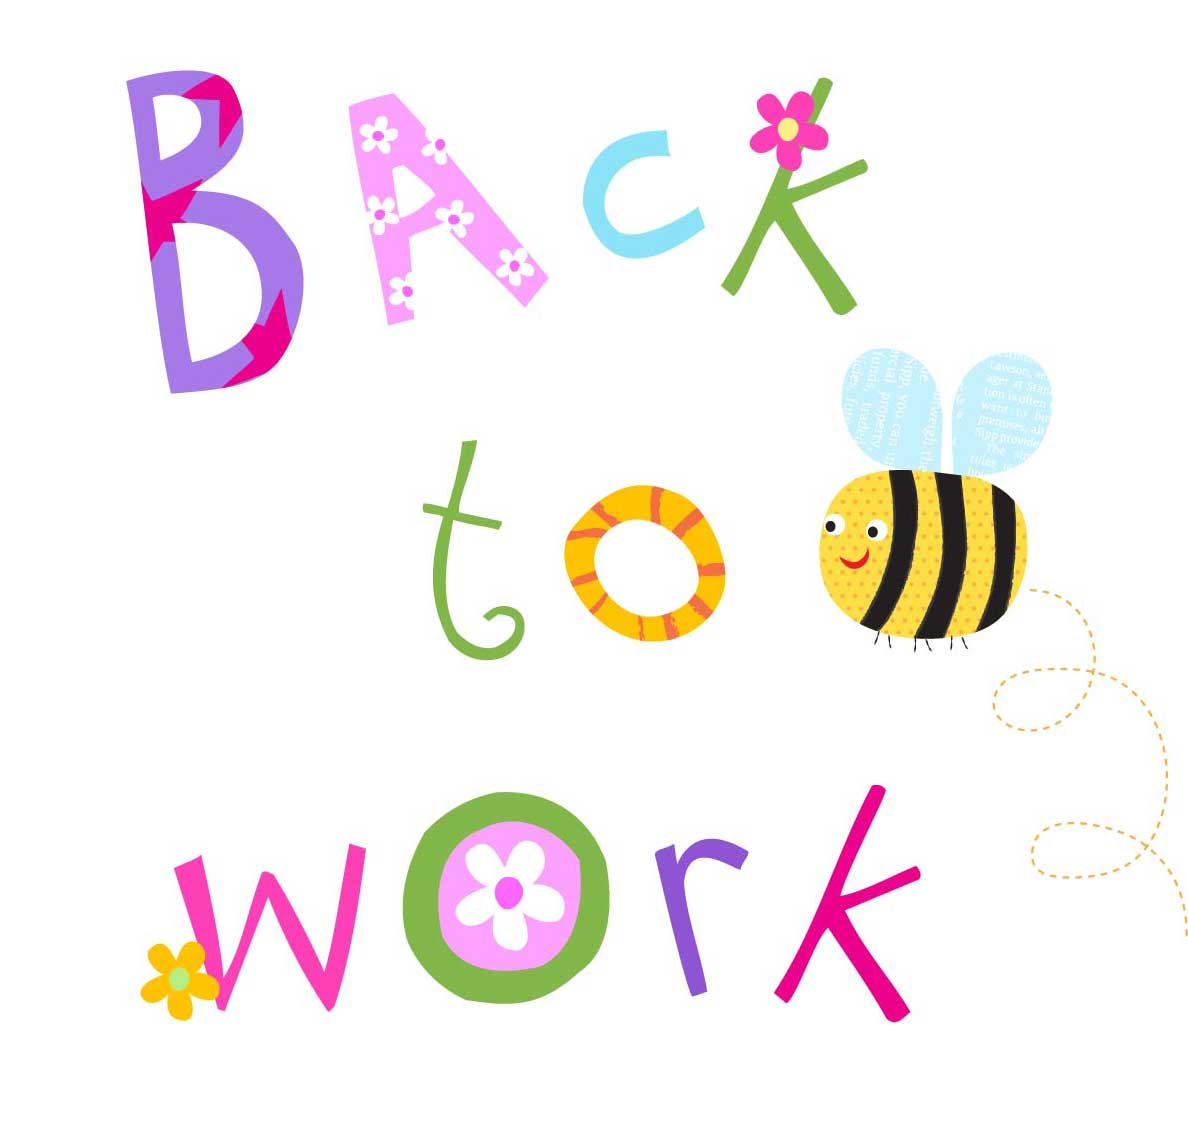 back to work after vacation clipart - Clipground